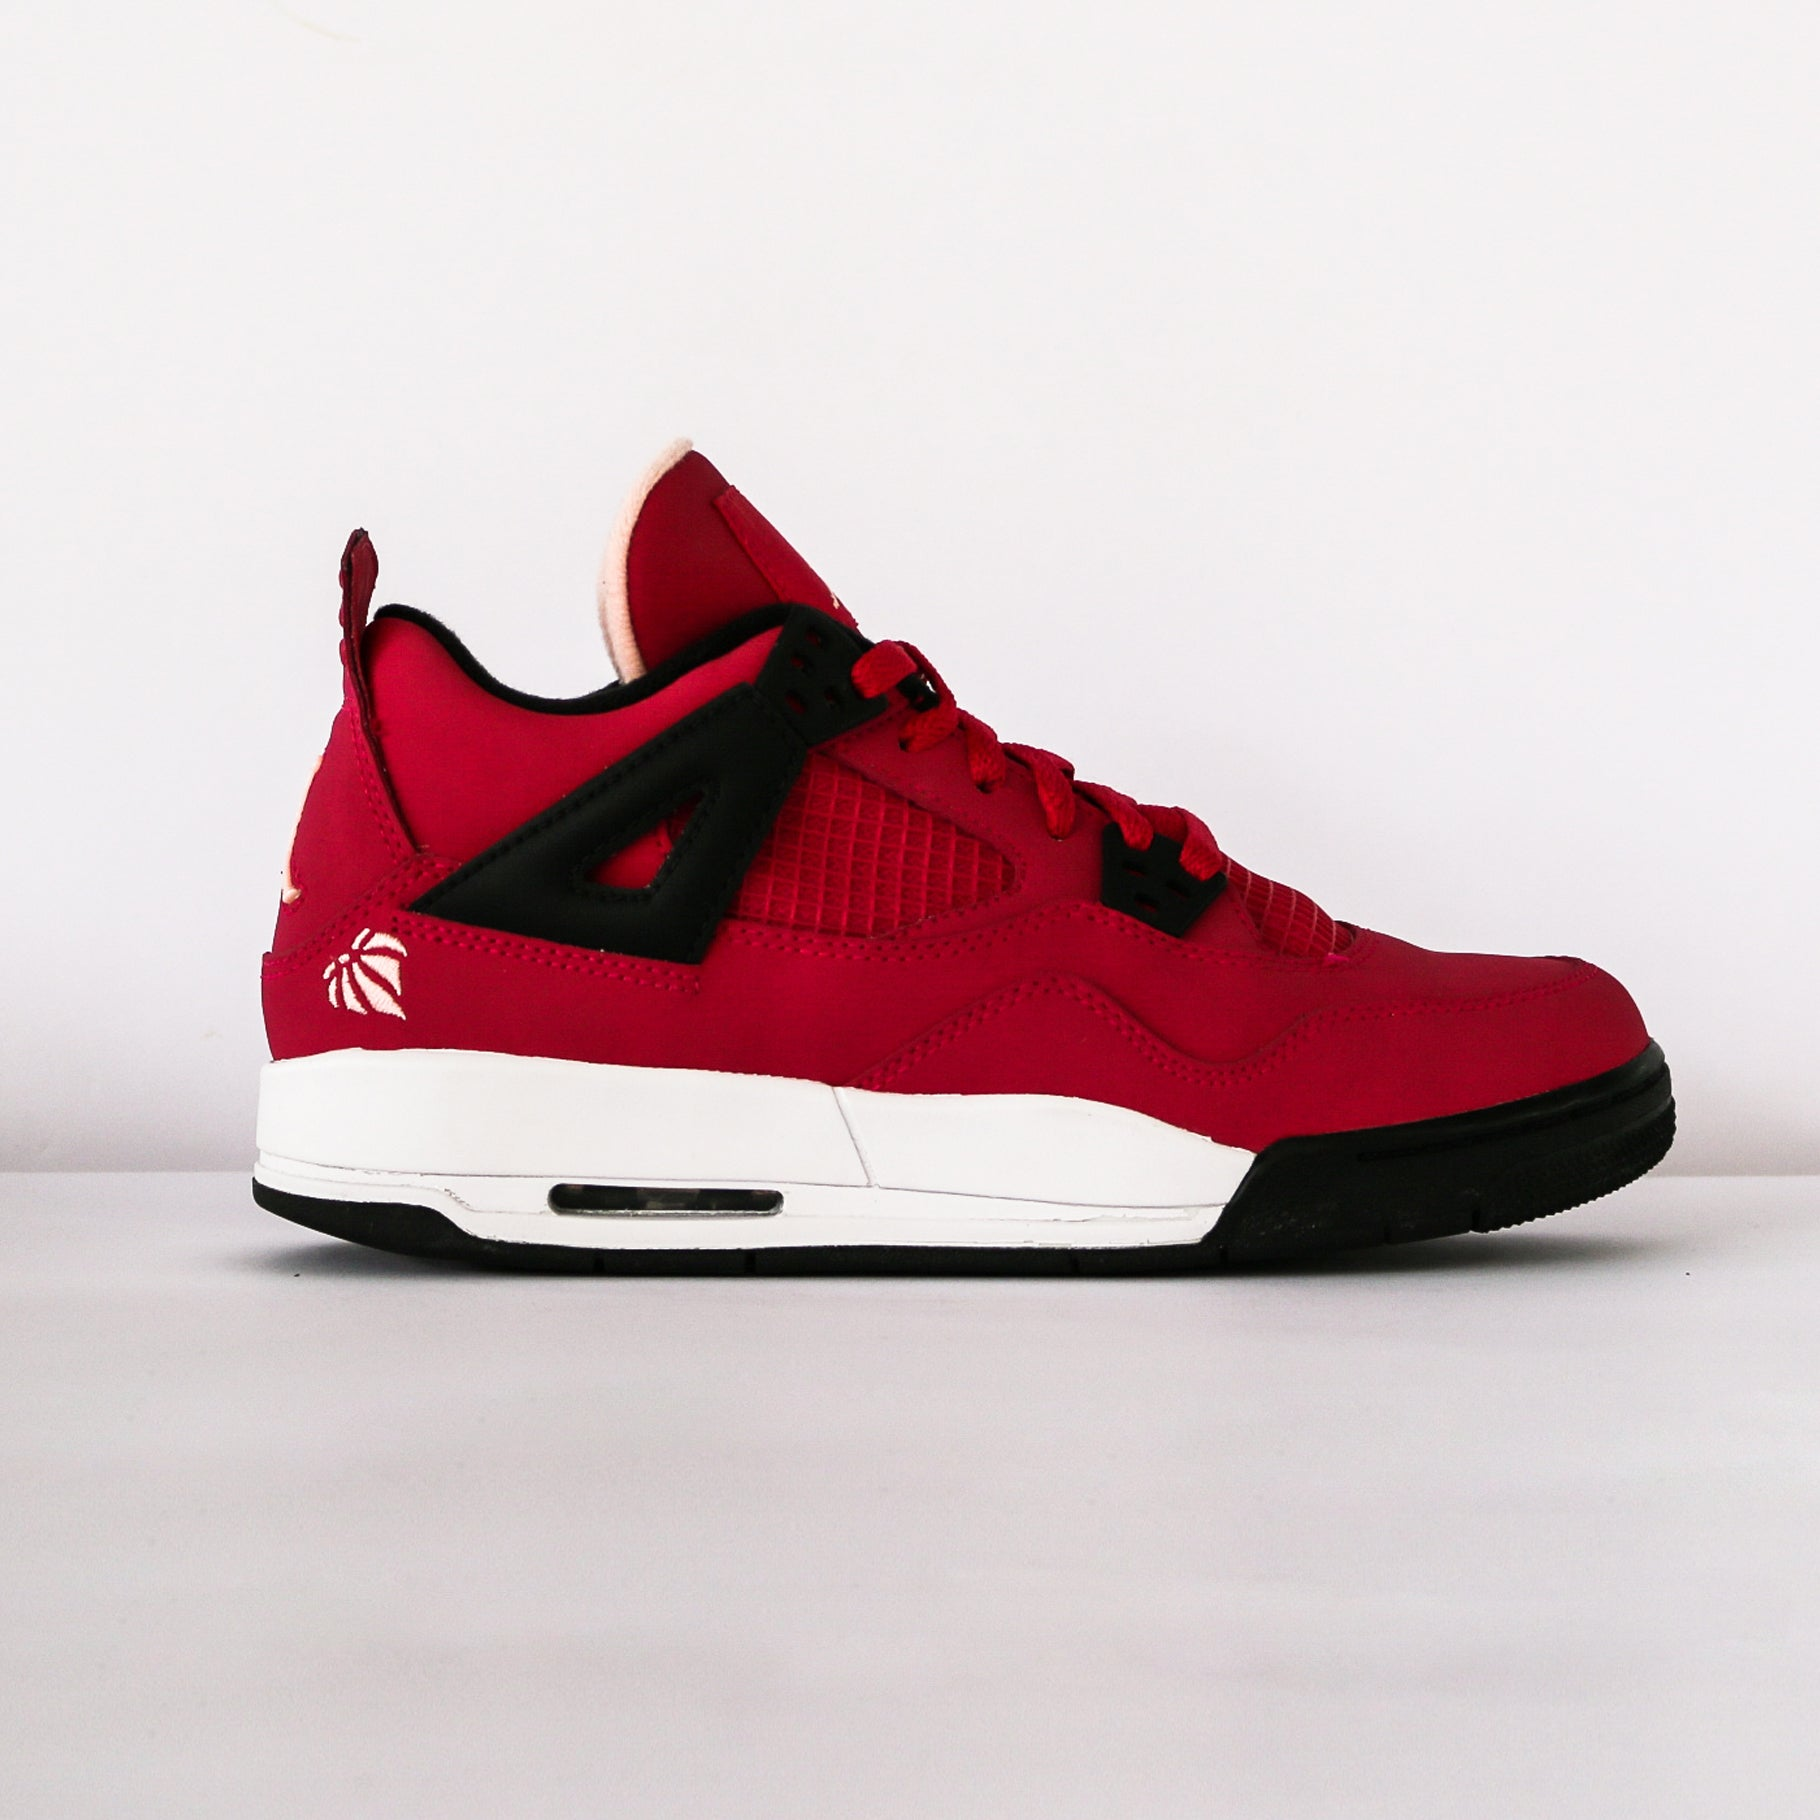 Air Jordan 4 Retro Voltage Cherry (GS)